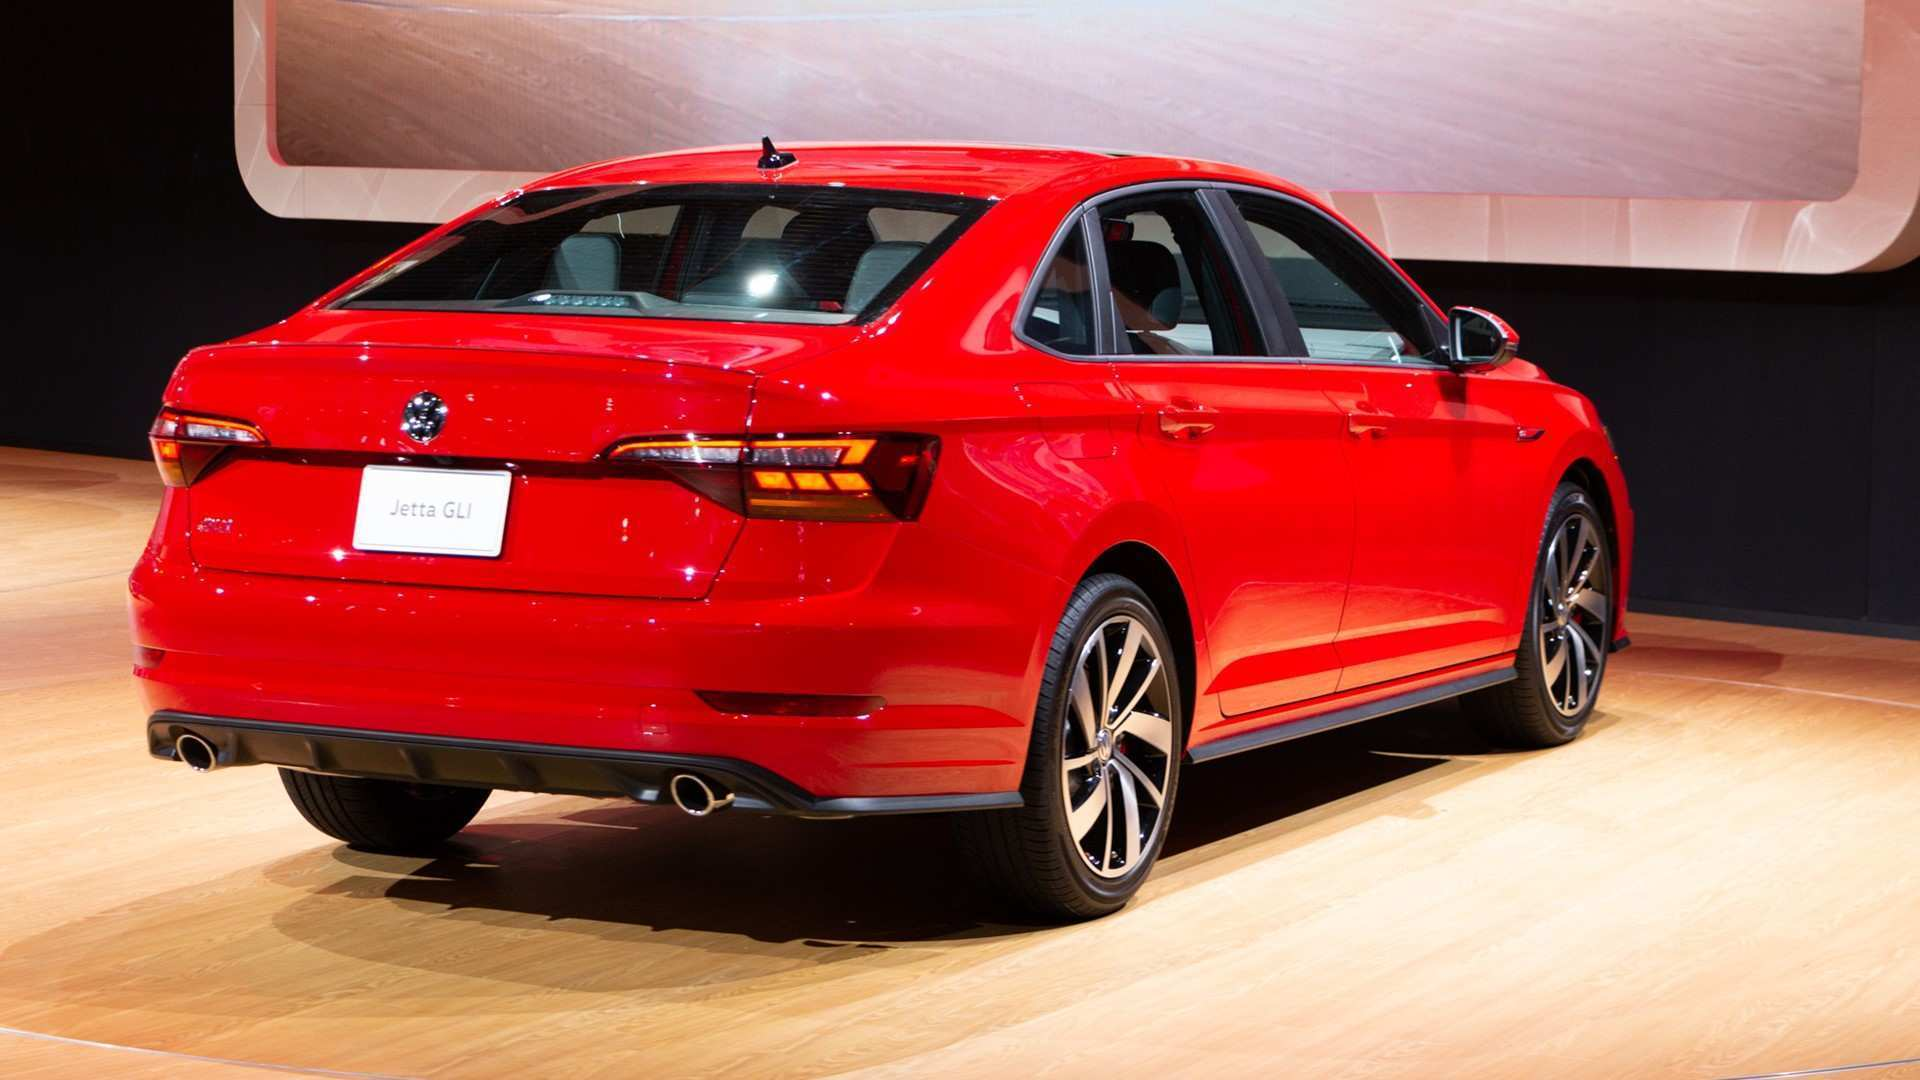 96 New Vw Jetta 2019 Mexico Specs